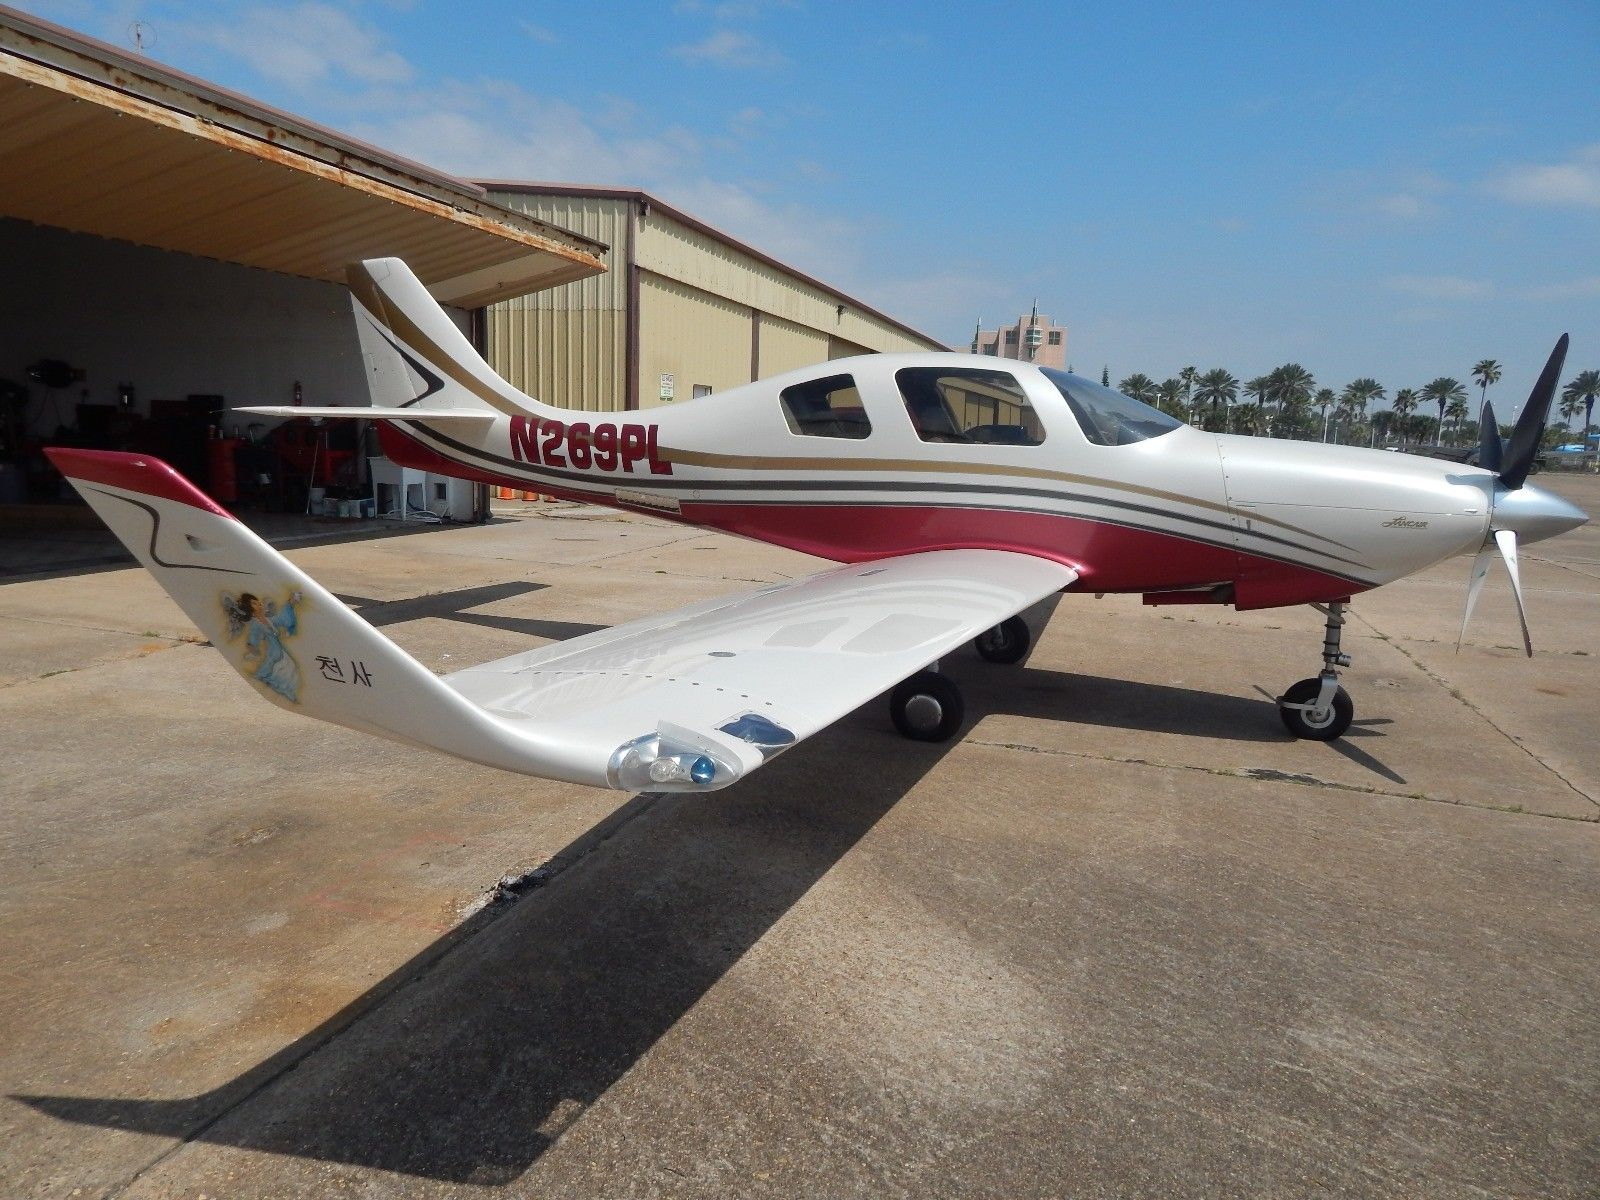 sharp 2007 Lancair 4P aircraft for sale